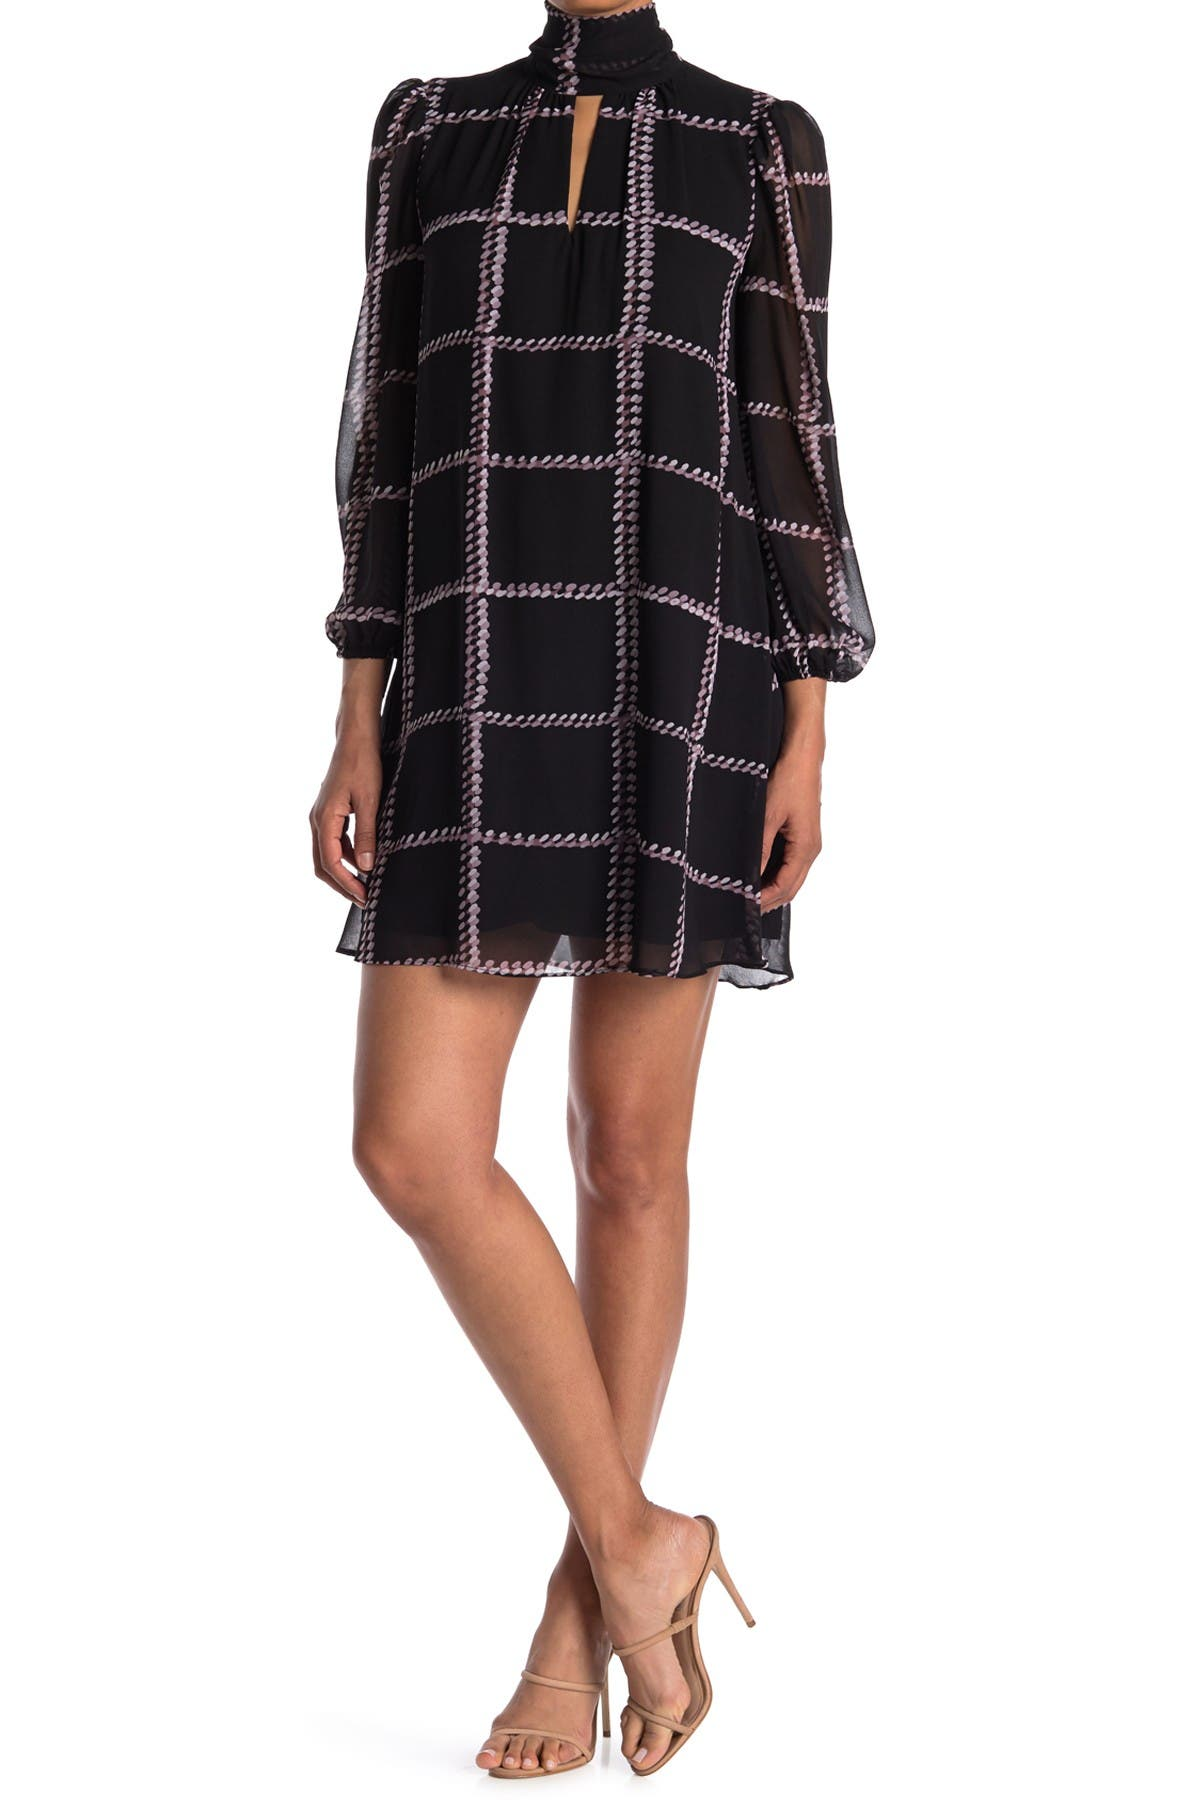 Image of London Times Sheer Chiffon Check Print Shift Dress